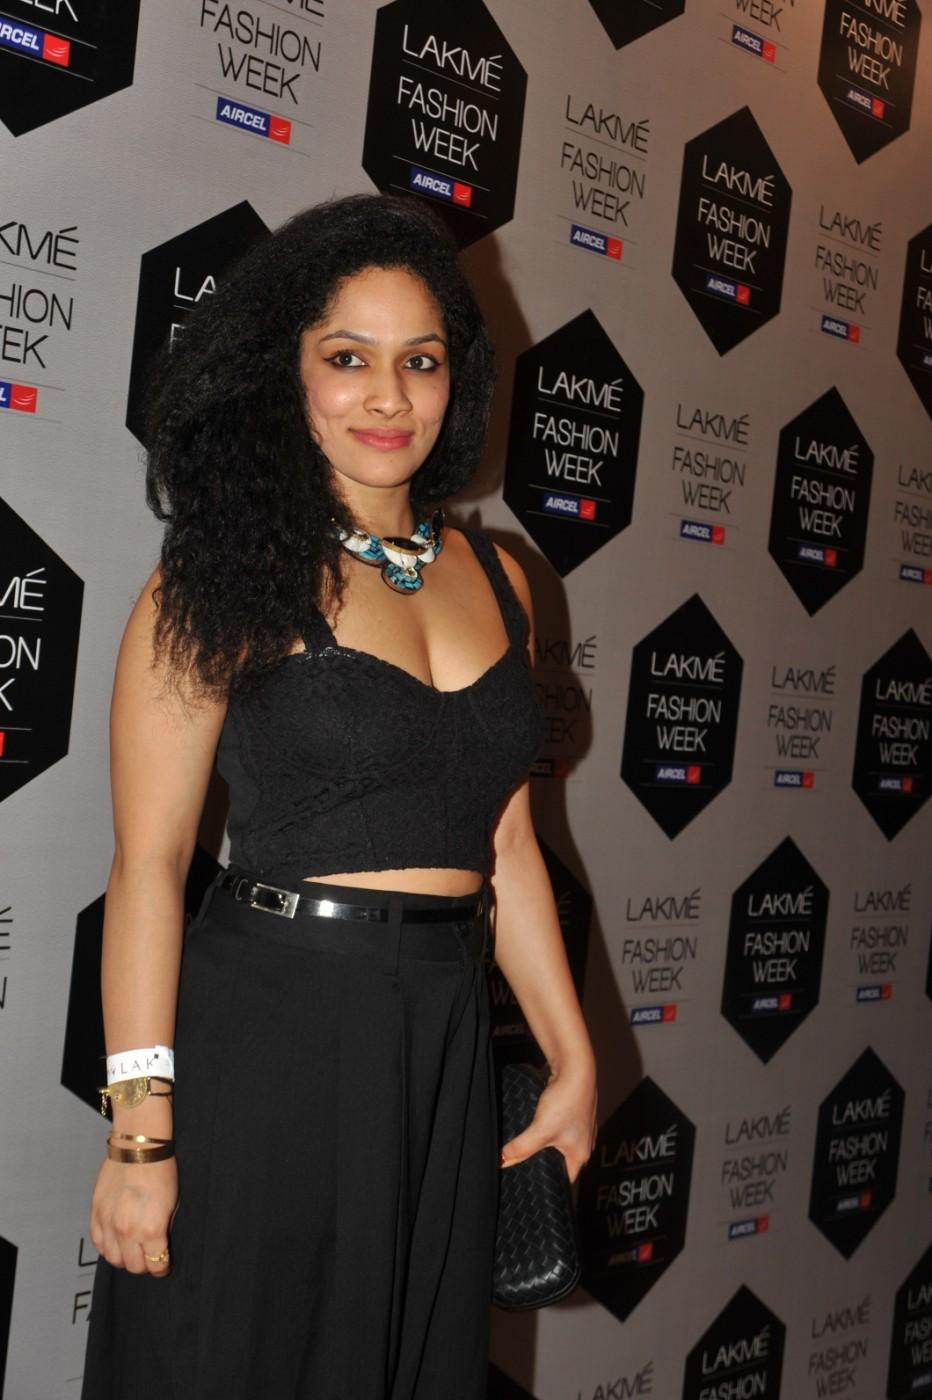 Masaba Gupta - Lakme Fashion Week 2012 Day 5 Photo